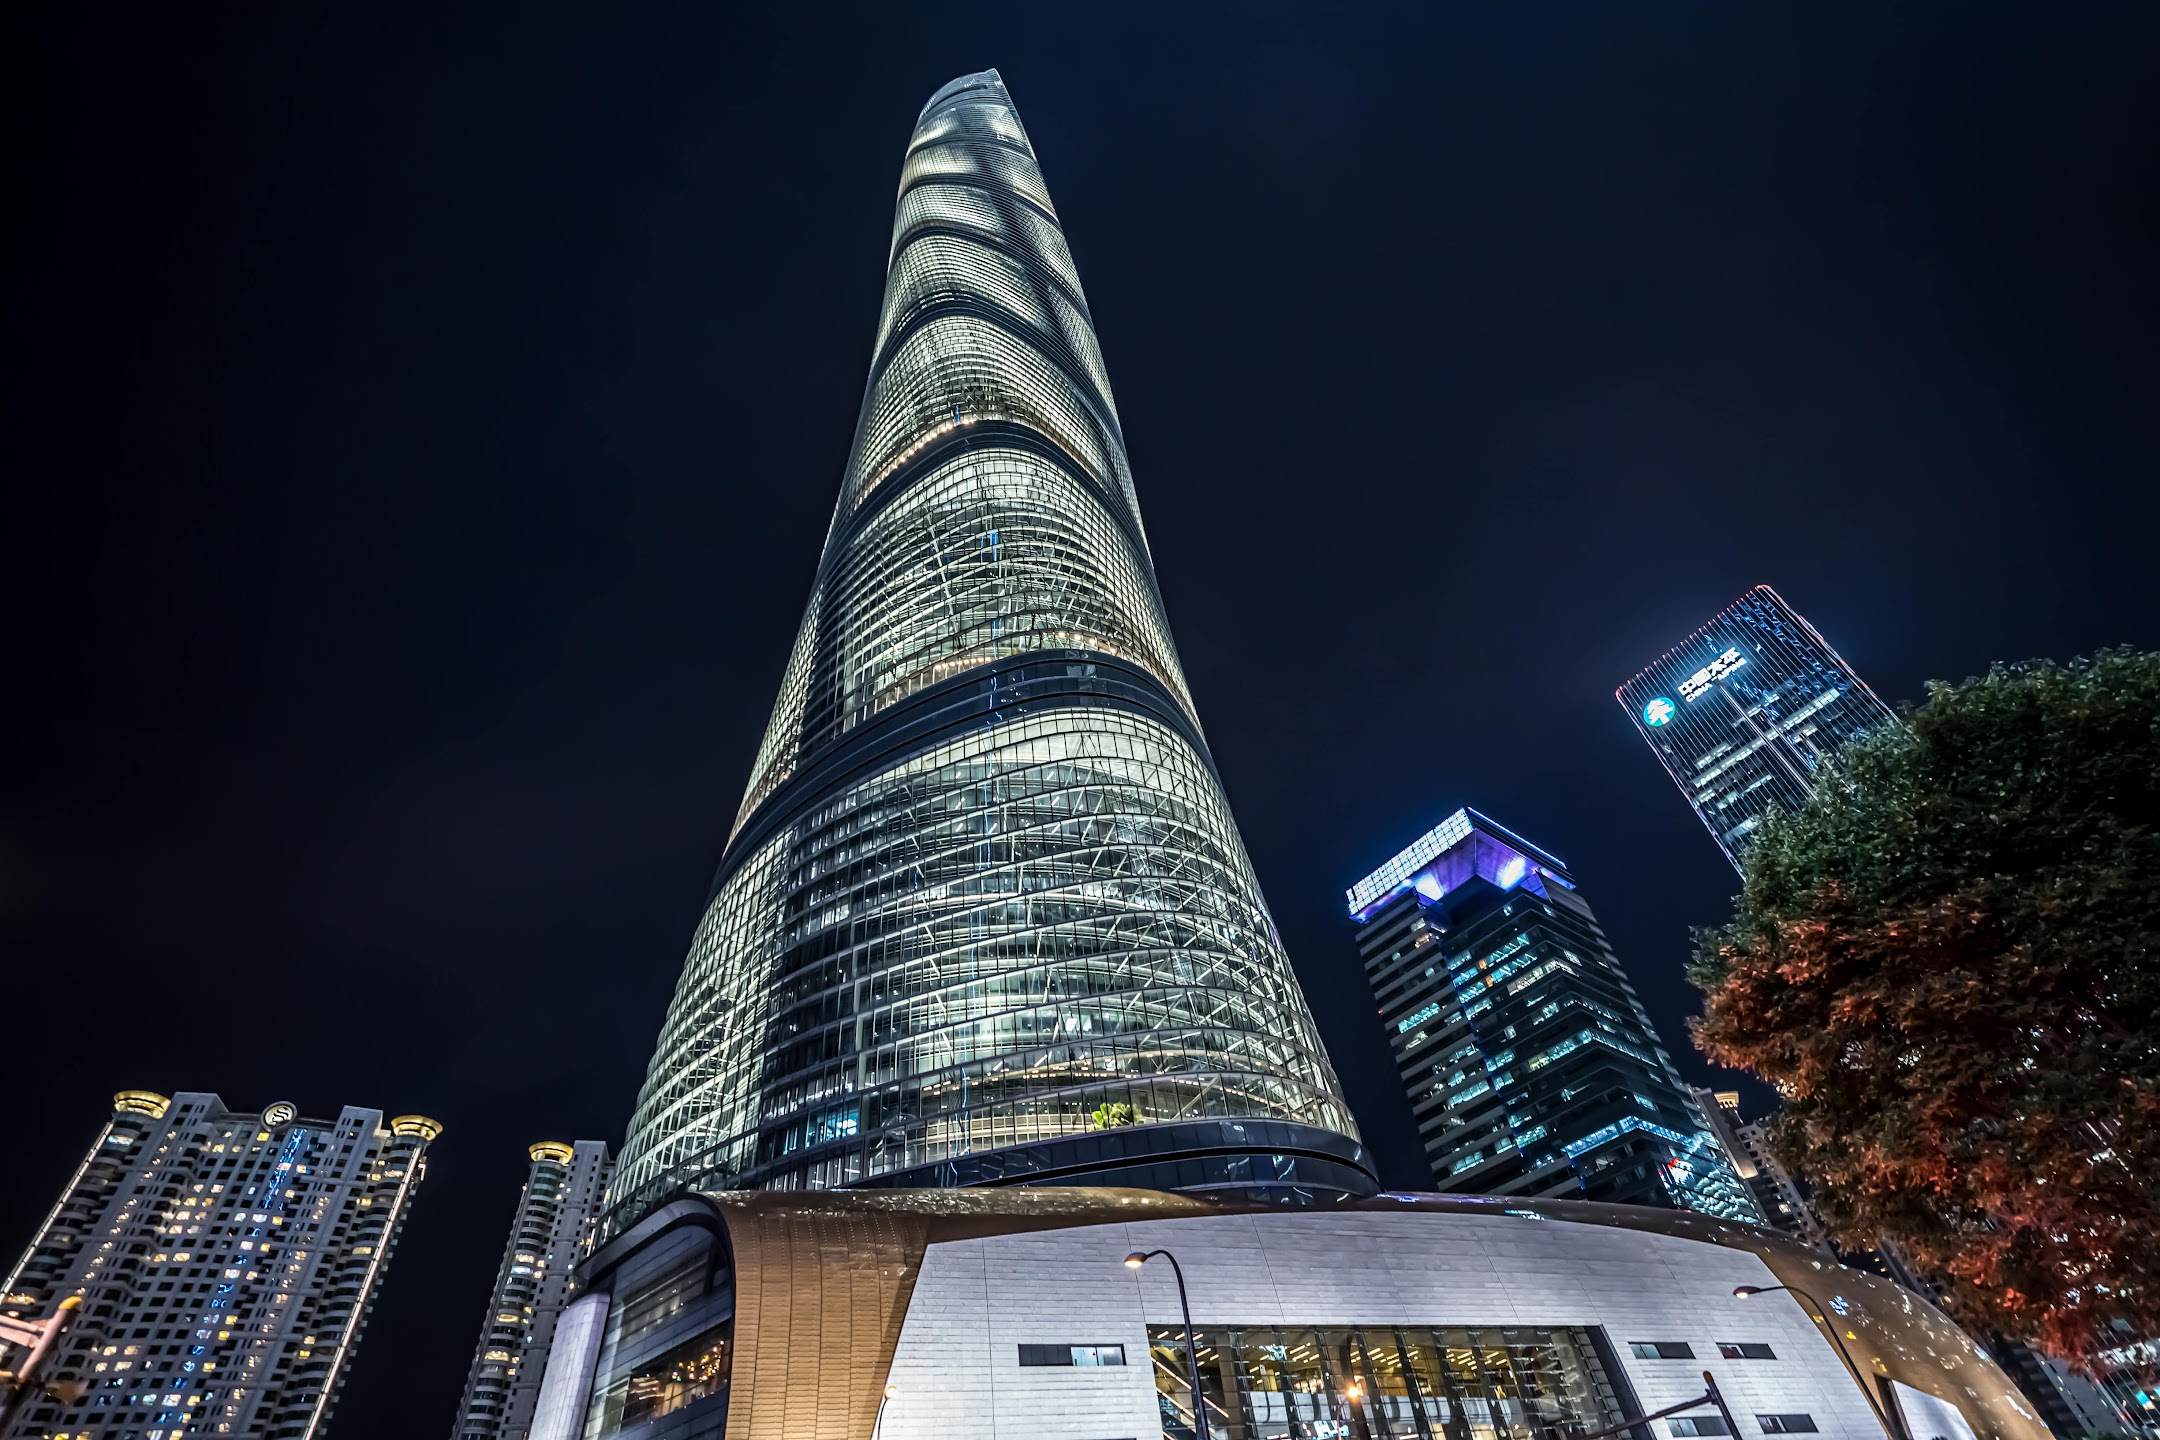 Shanghai Tower light-up